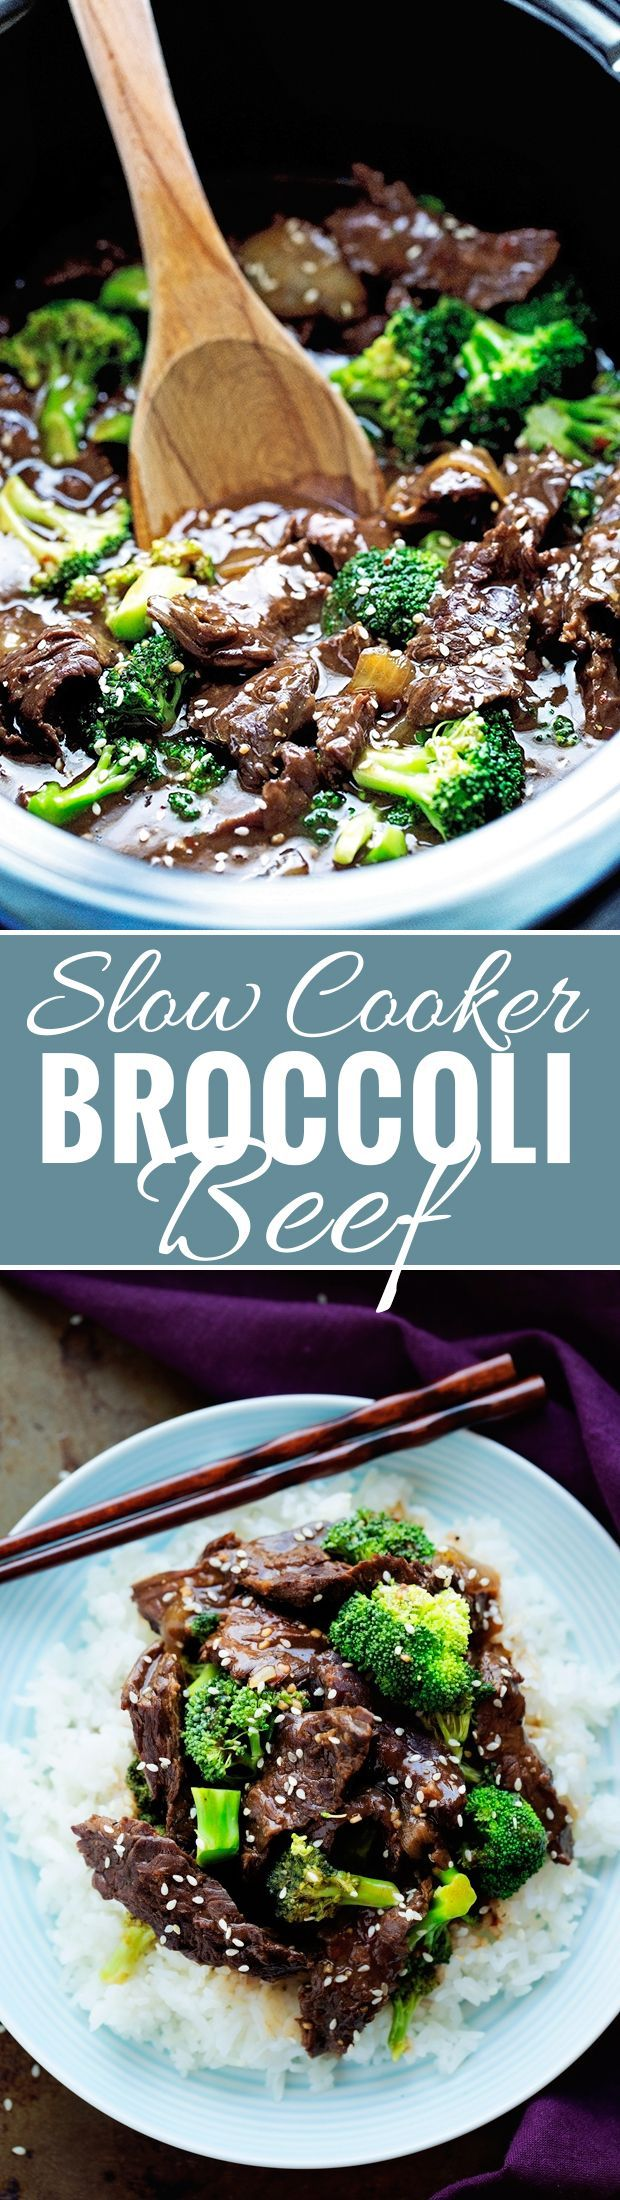 Slow Cooker Broccoli Beef - Thinly sliced tender beef with tons of crunchy broccoli, it's healthy and DELICIOUS! #broccolibeef #beefwithbroccoli #slowcooker #crockpot | Littlespicejar.com @littlespicejar